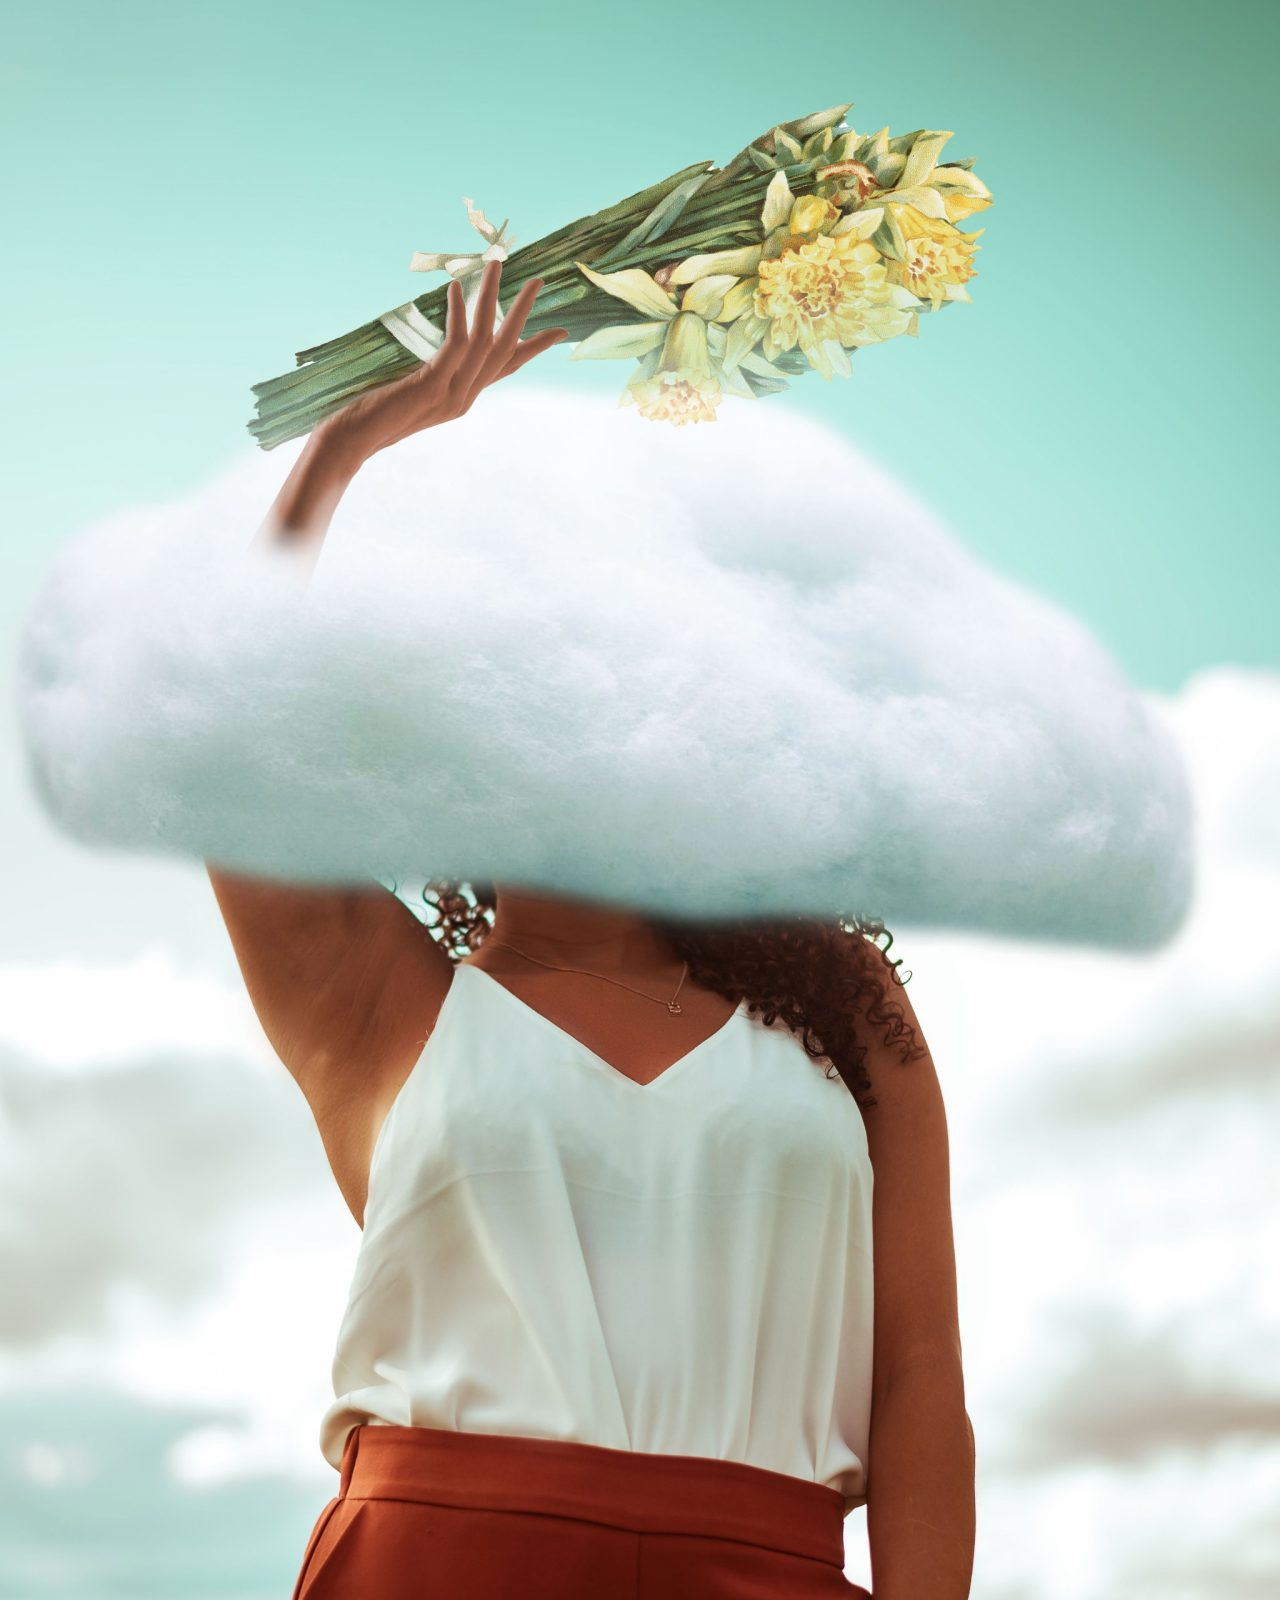 A photoshopped image of a brown woman in a white shirt and burnt umber pants against a turquoise background with her head in the clouds and holding a bouquet of daffodils above her head